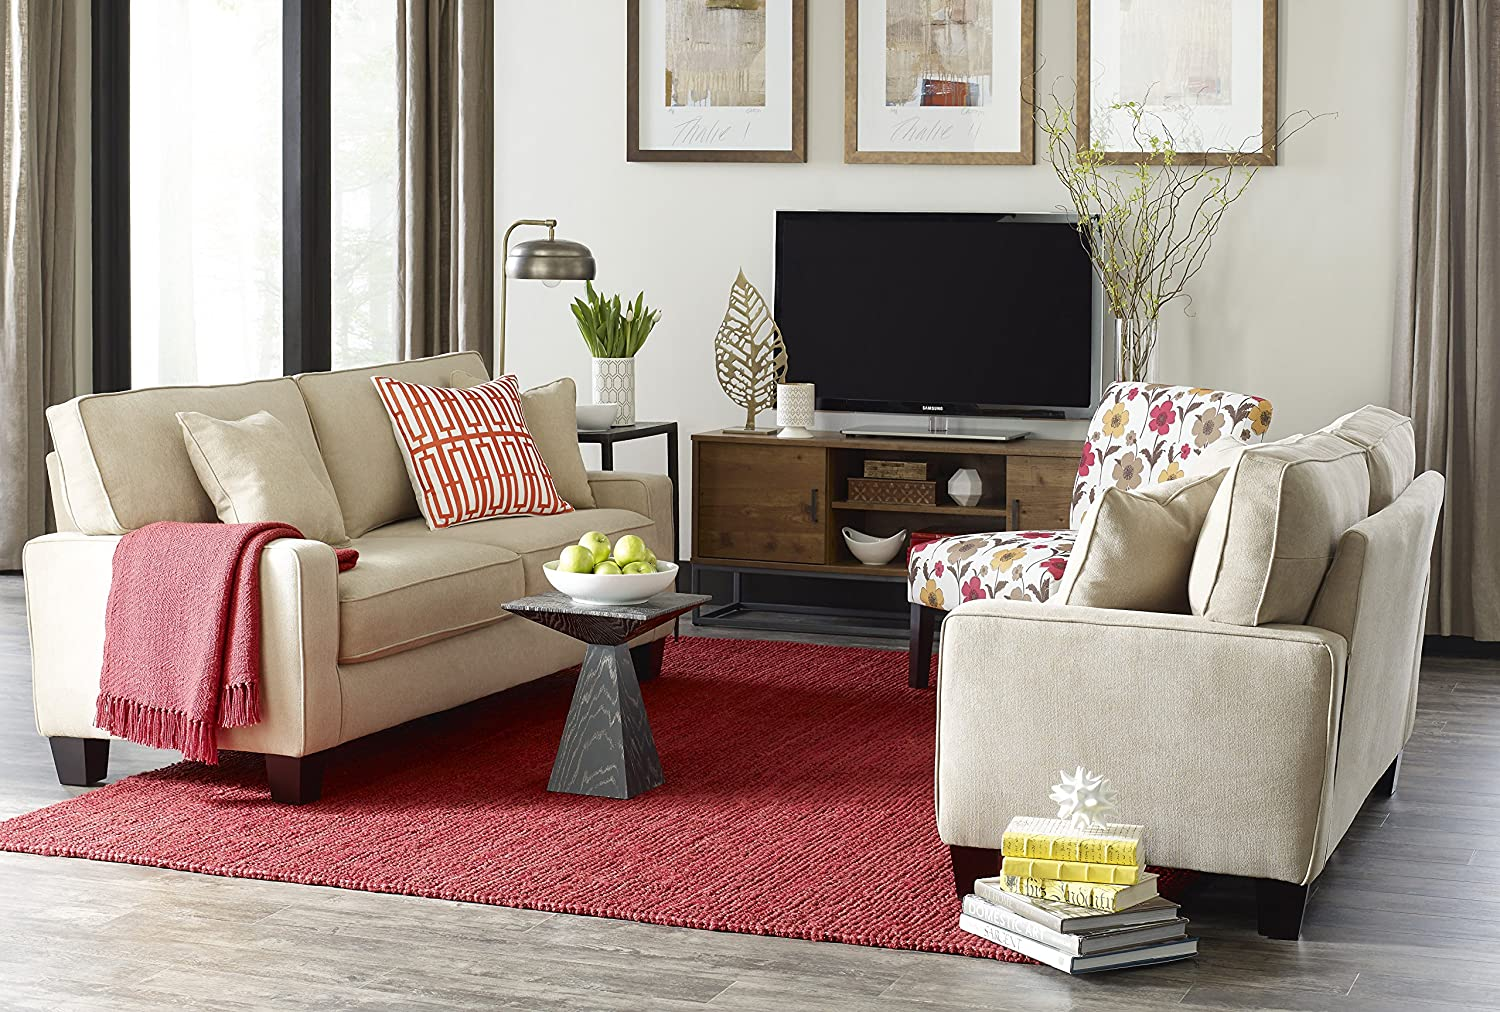 The 5 Best Living Room Sofas And Couches: Buying Guide & Reviews 12